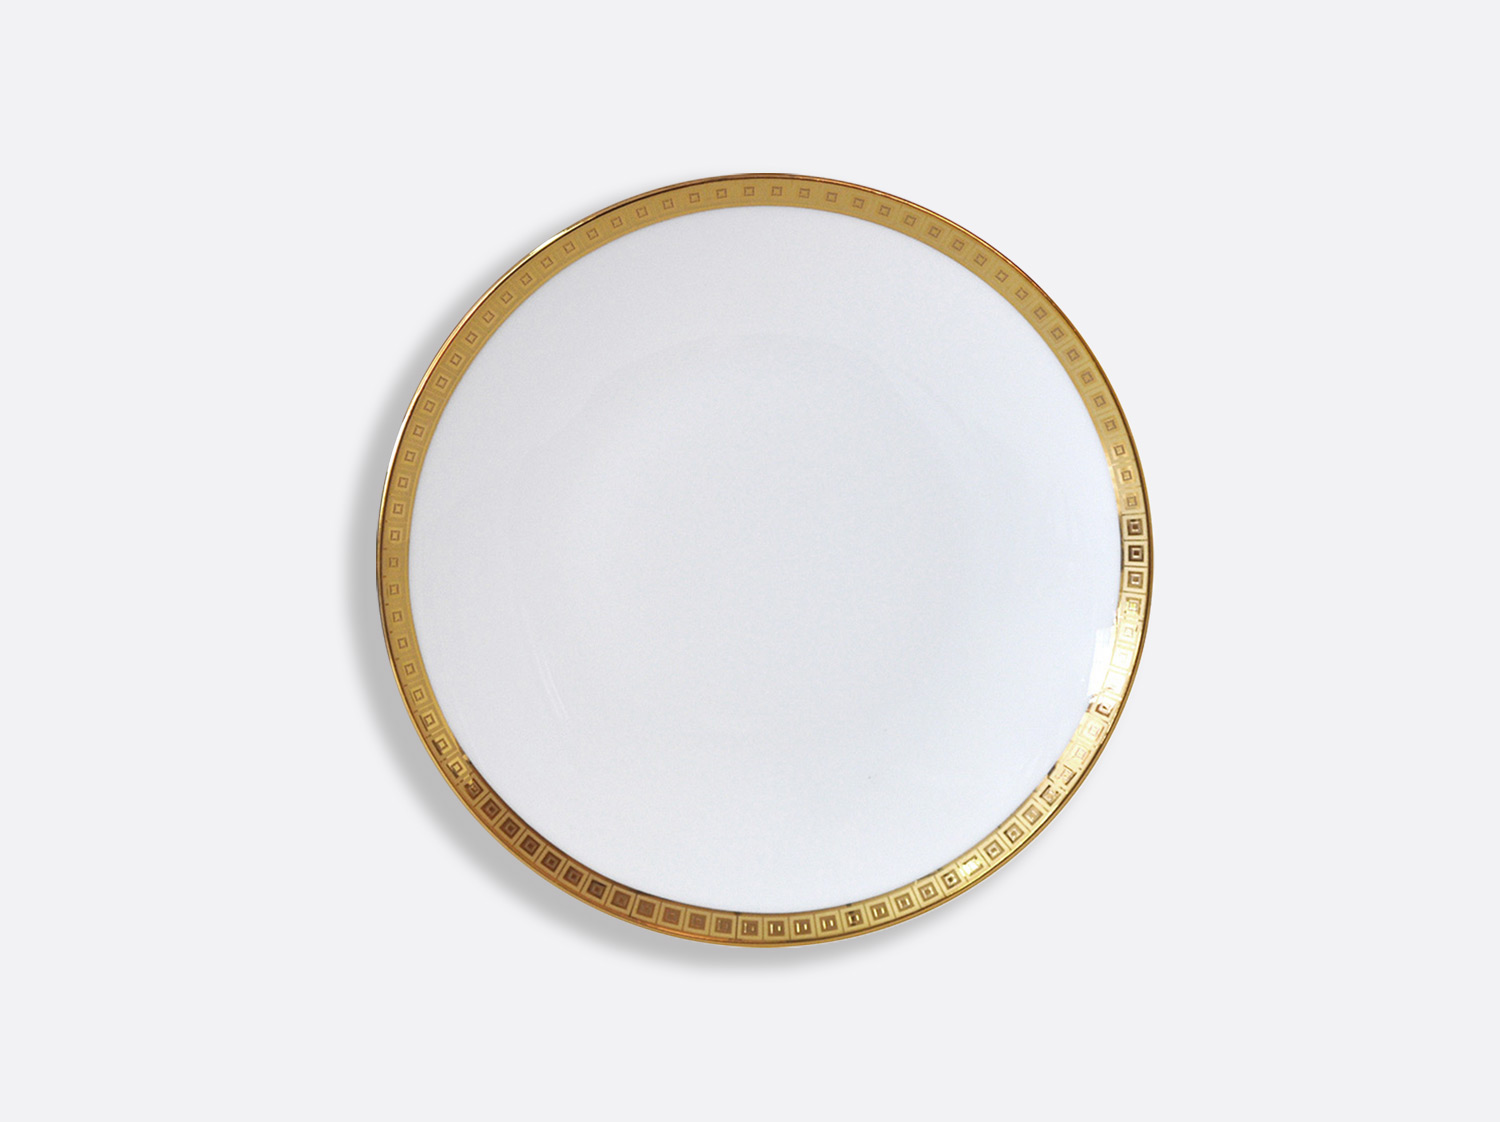 China Coupe Bread and butter plate 16 cm of the collection Athéna gold | Bernardaud